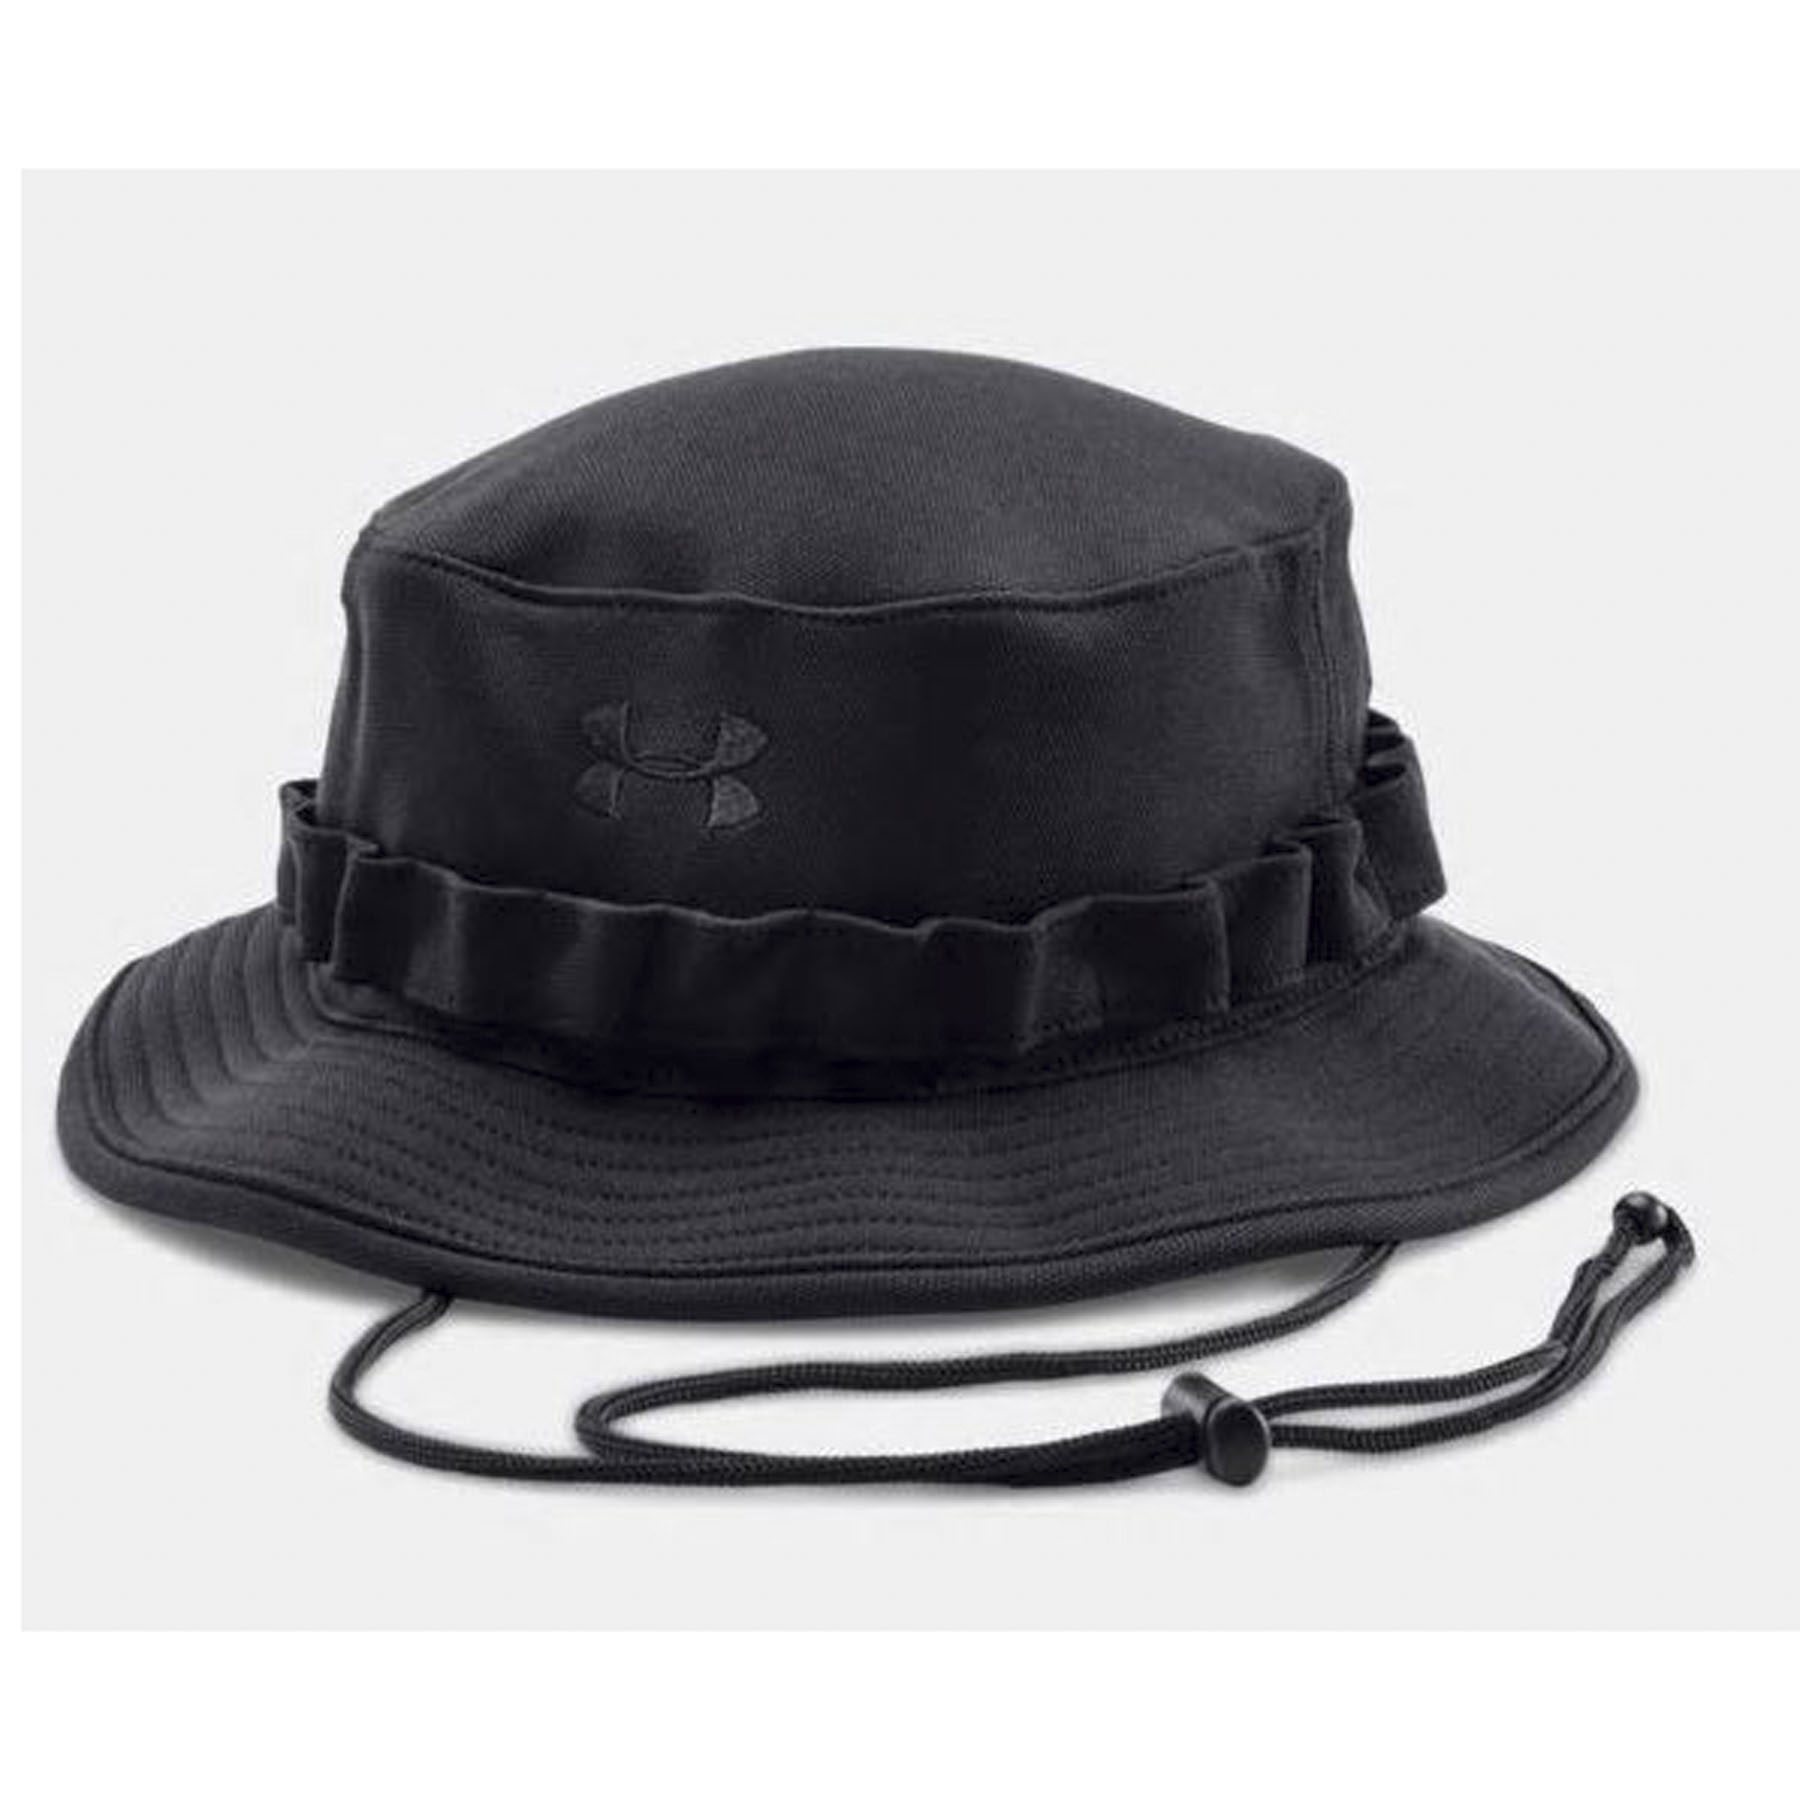 9fa6c02cb82 Under Armour Tactical Bucket Hat